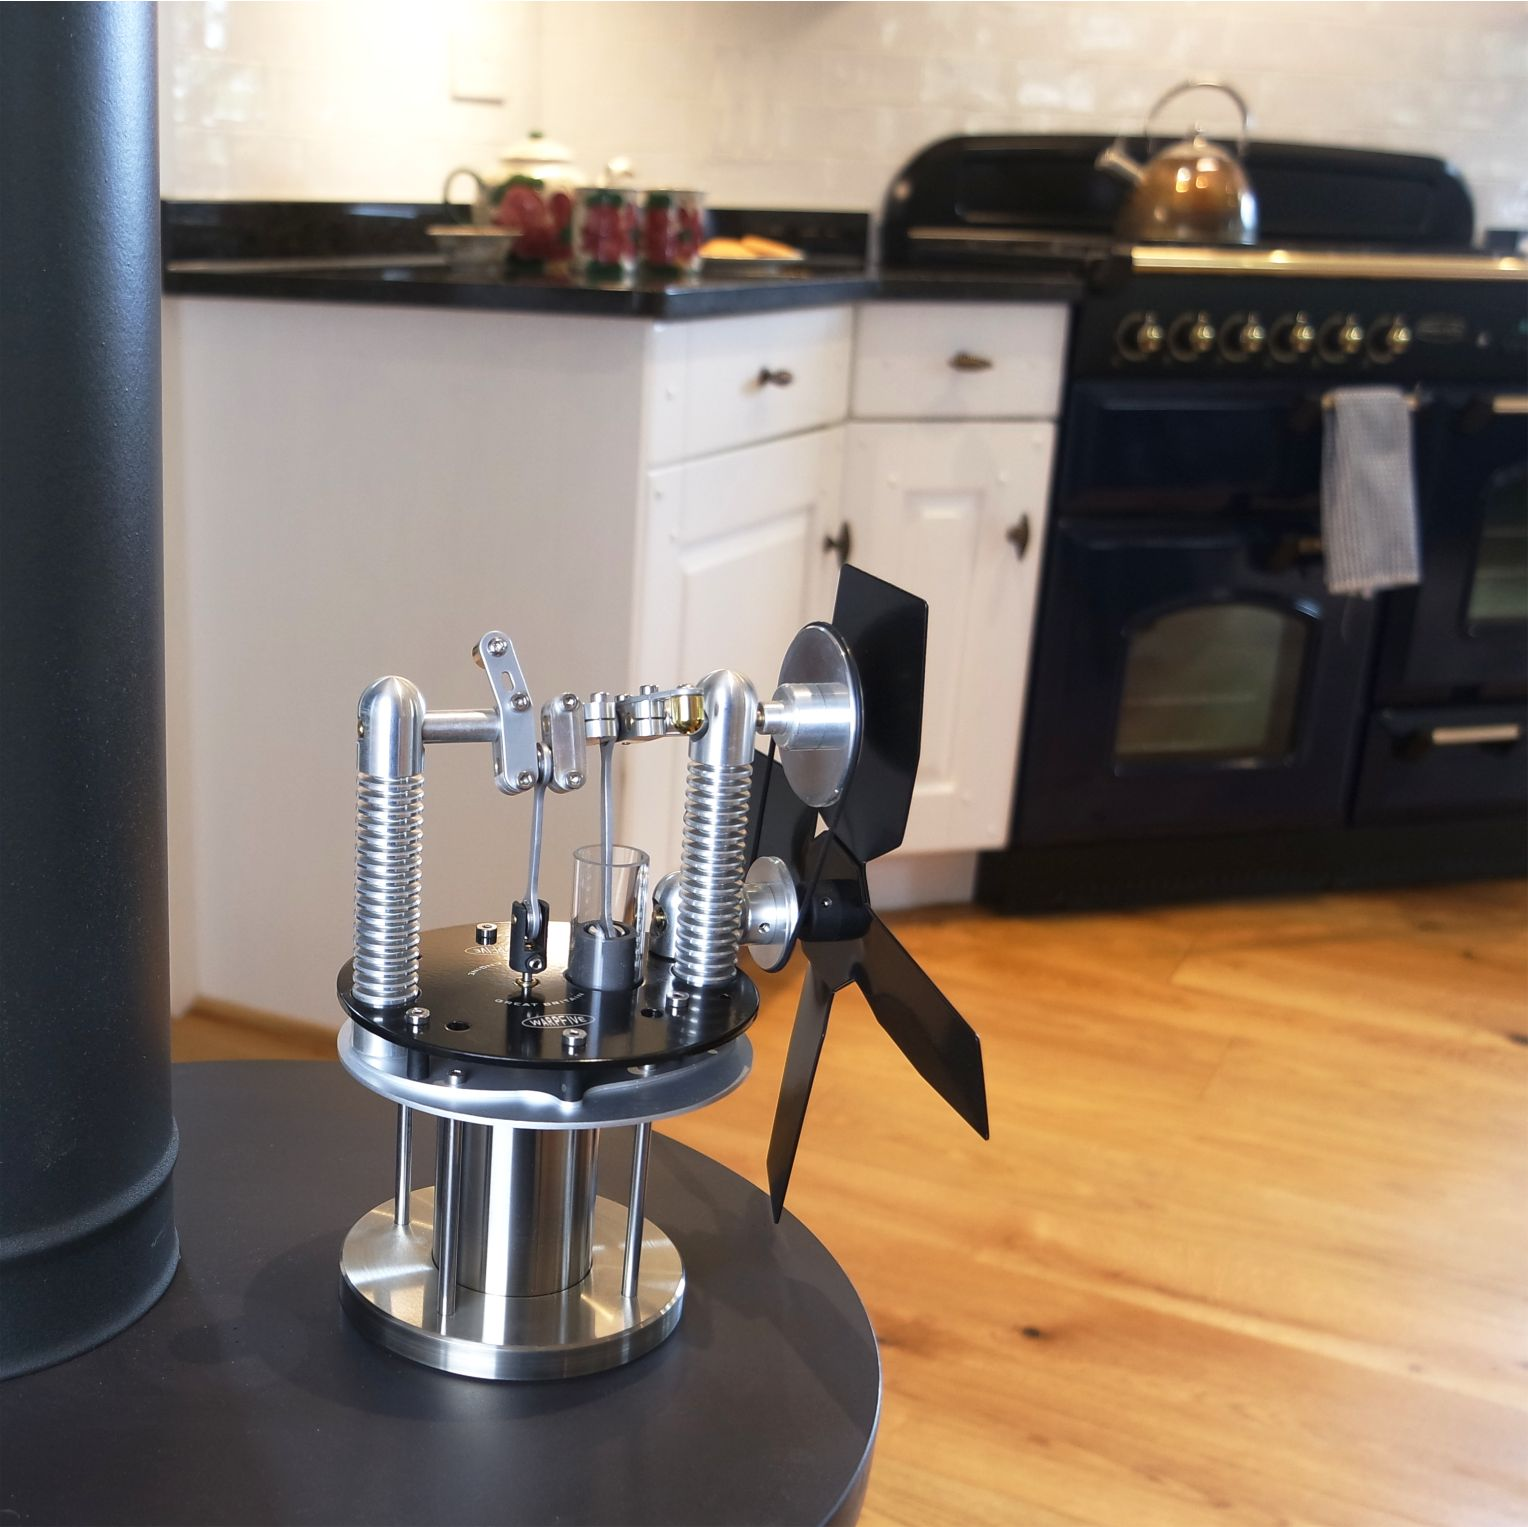 Small stove fan with complex Stirling engine design. Operates across a broad range of temperatures